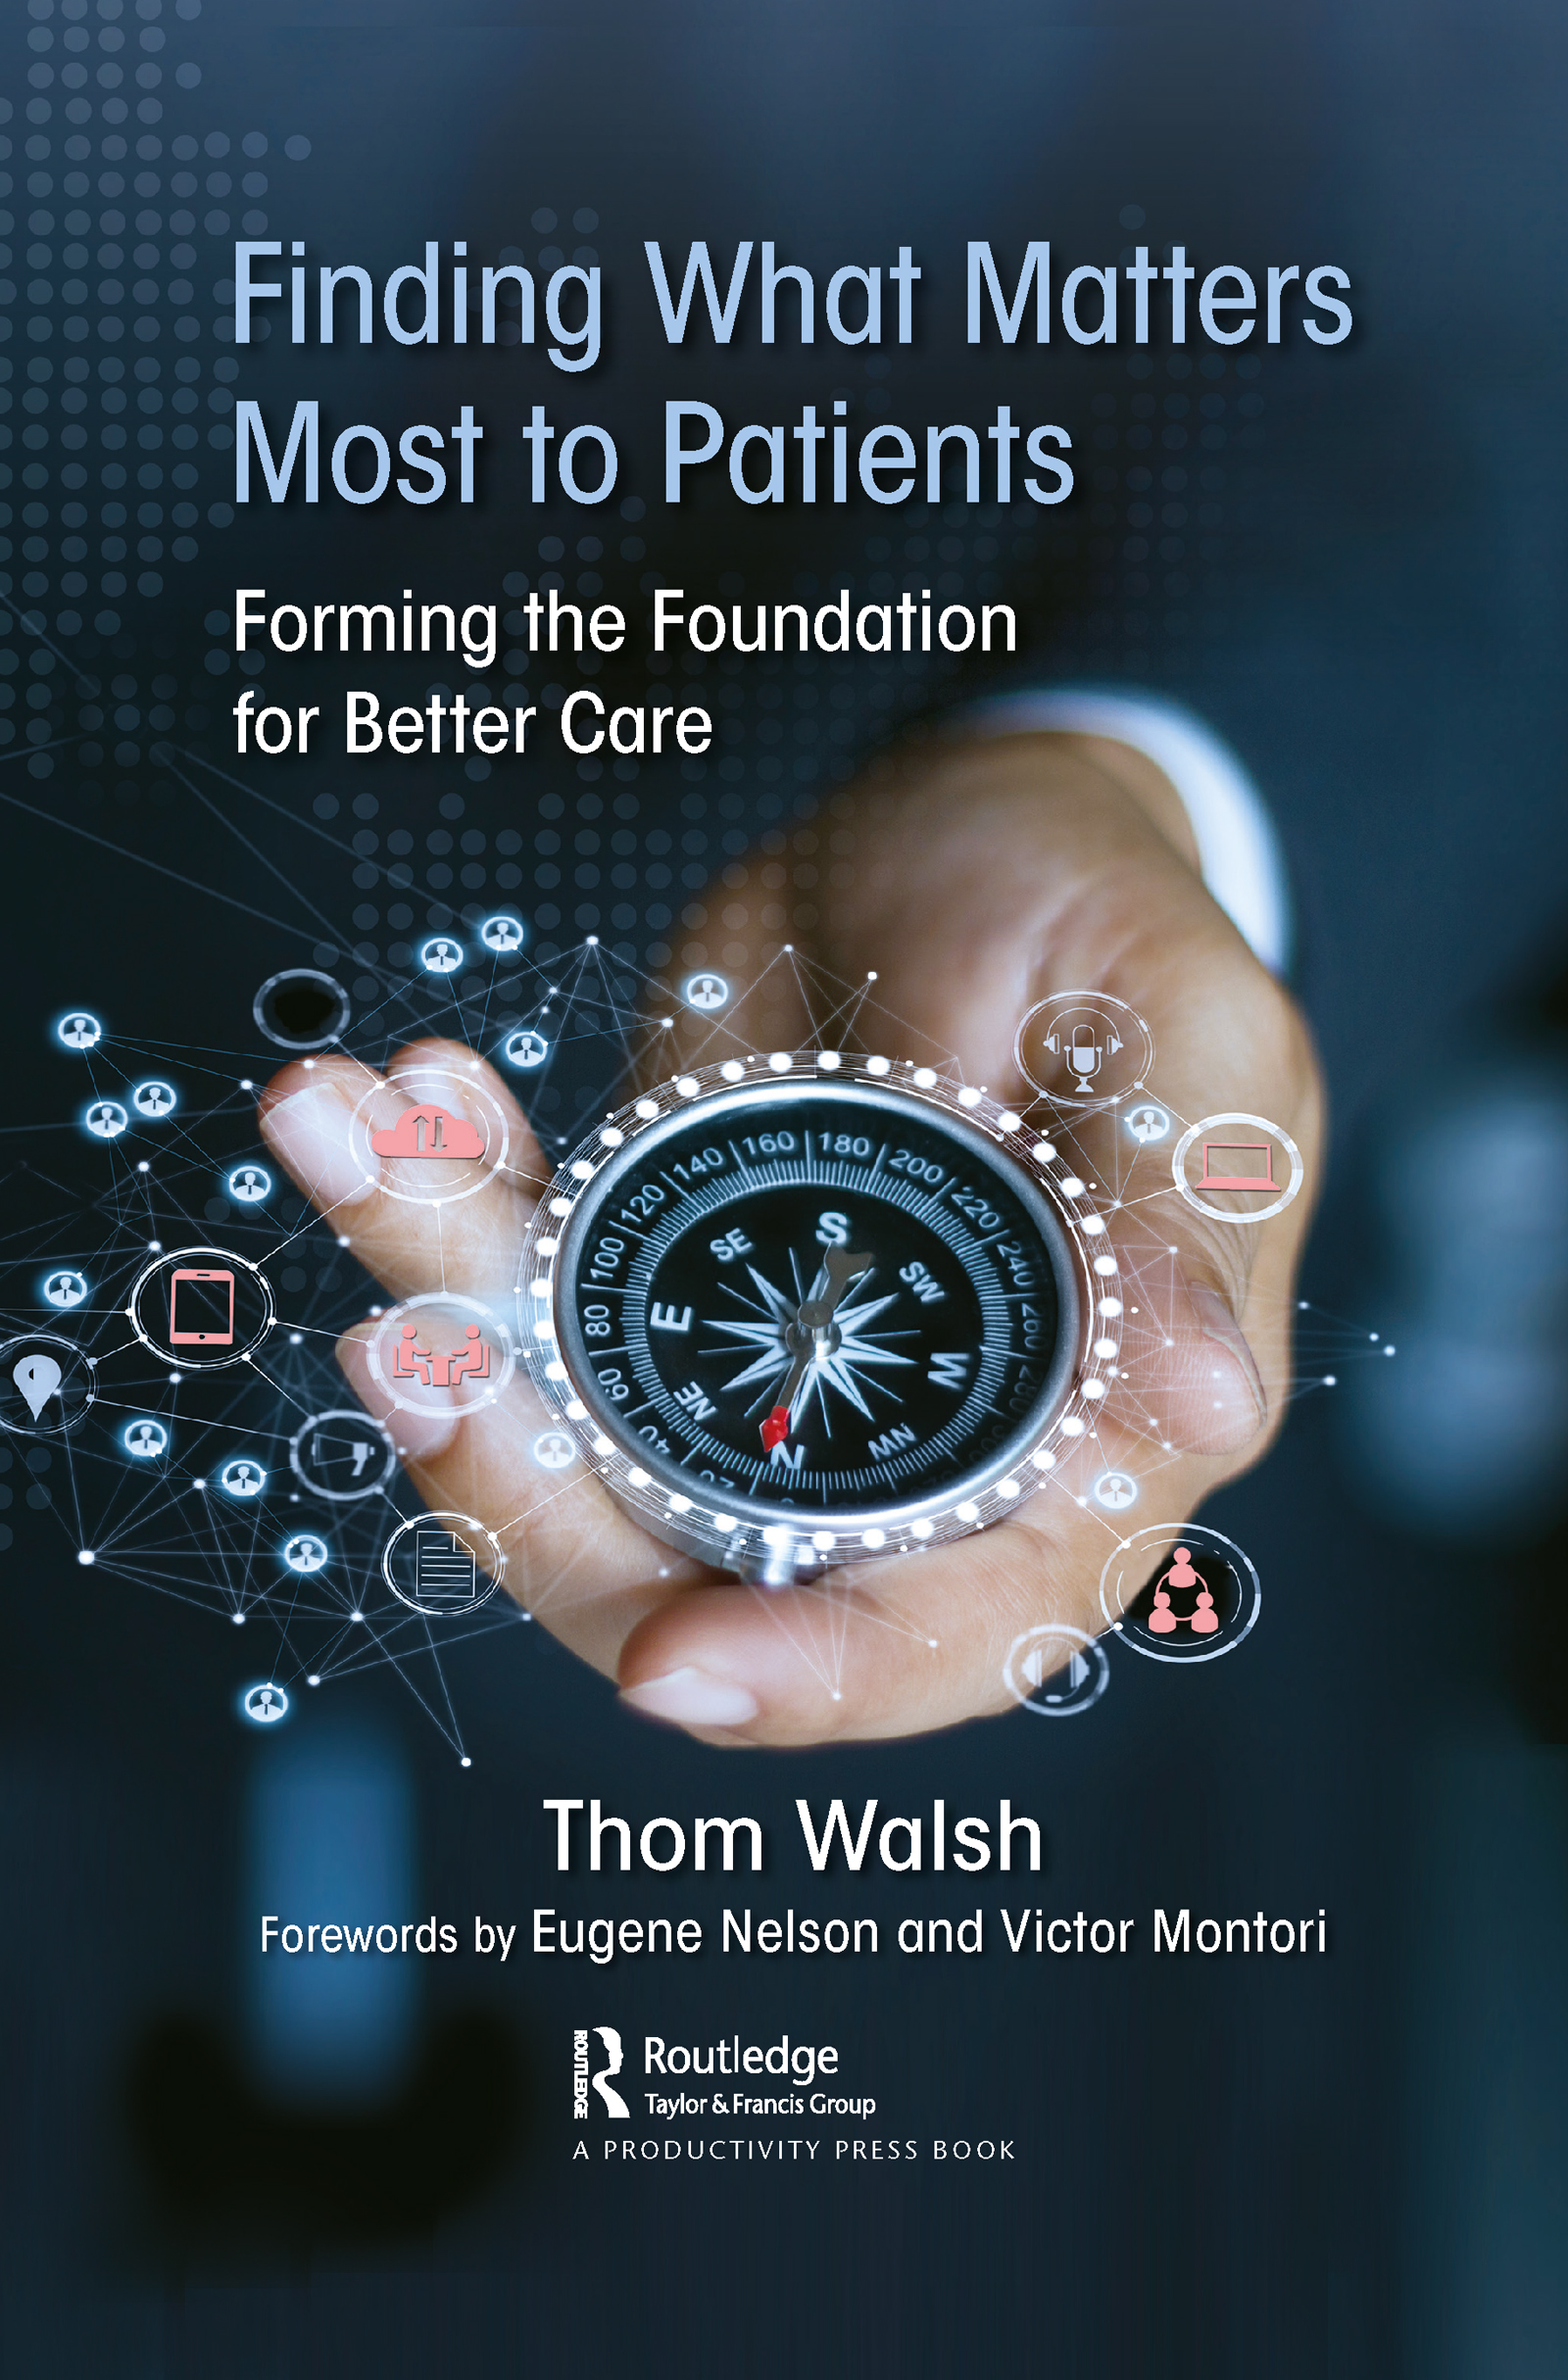 Finding What Matters Most to Patients